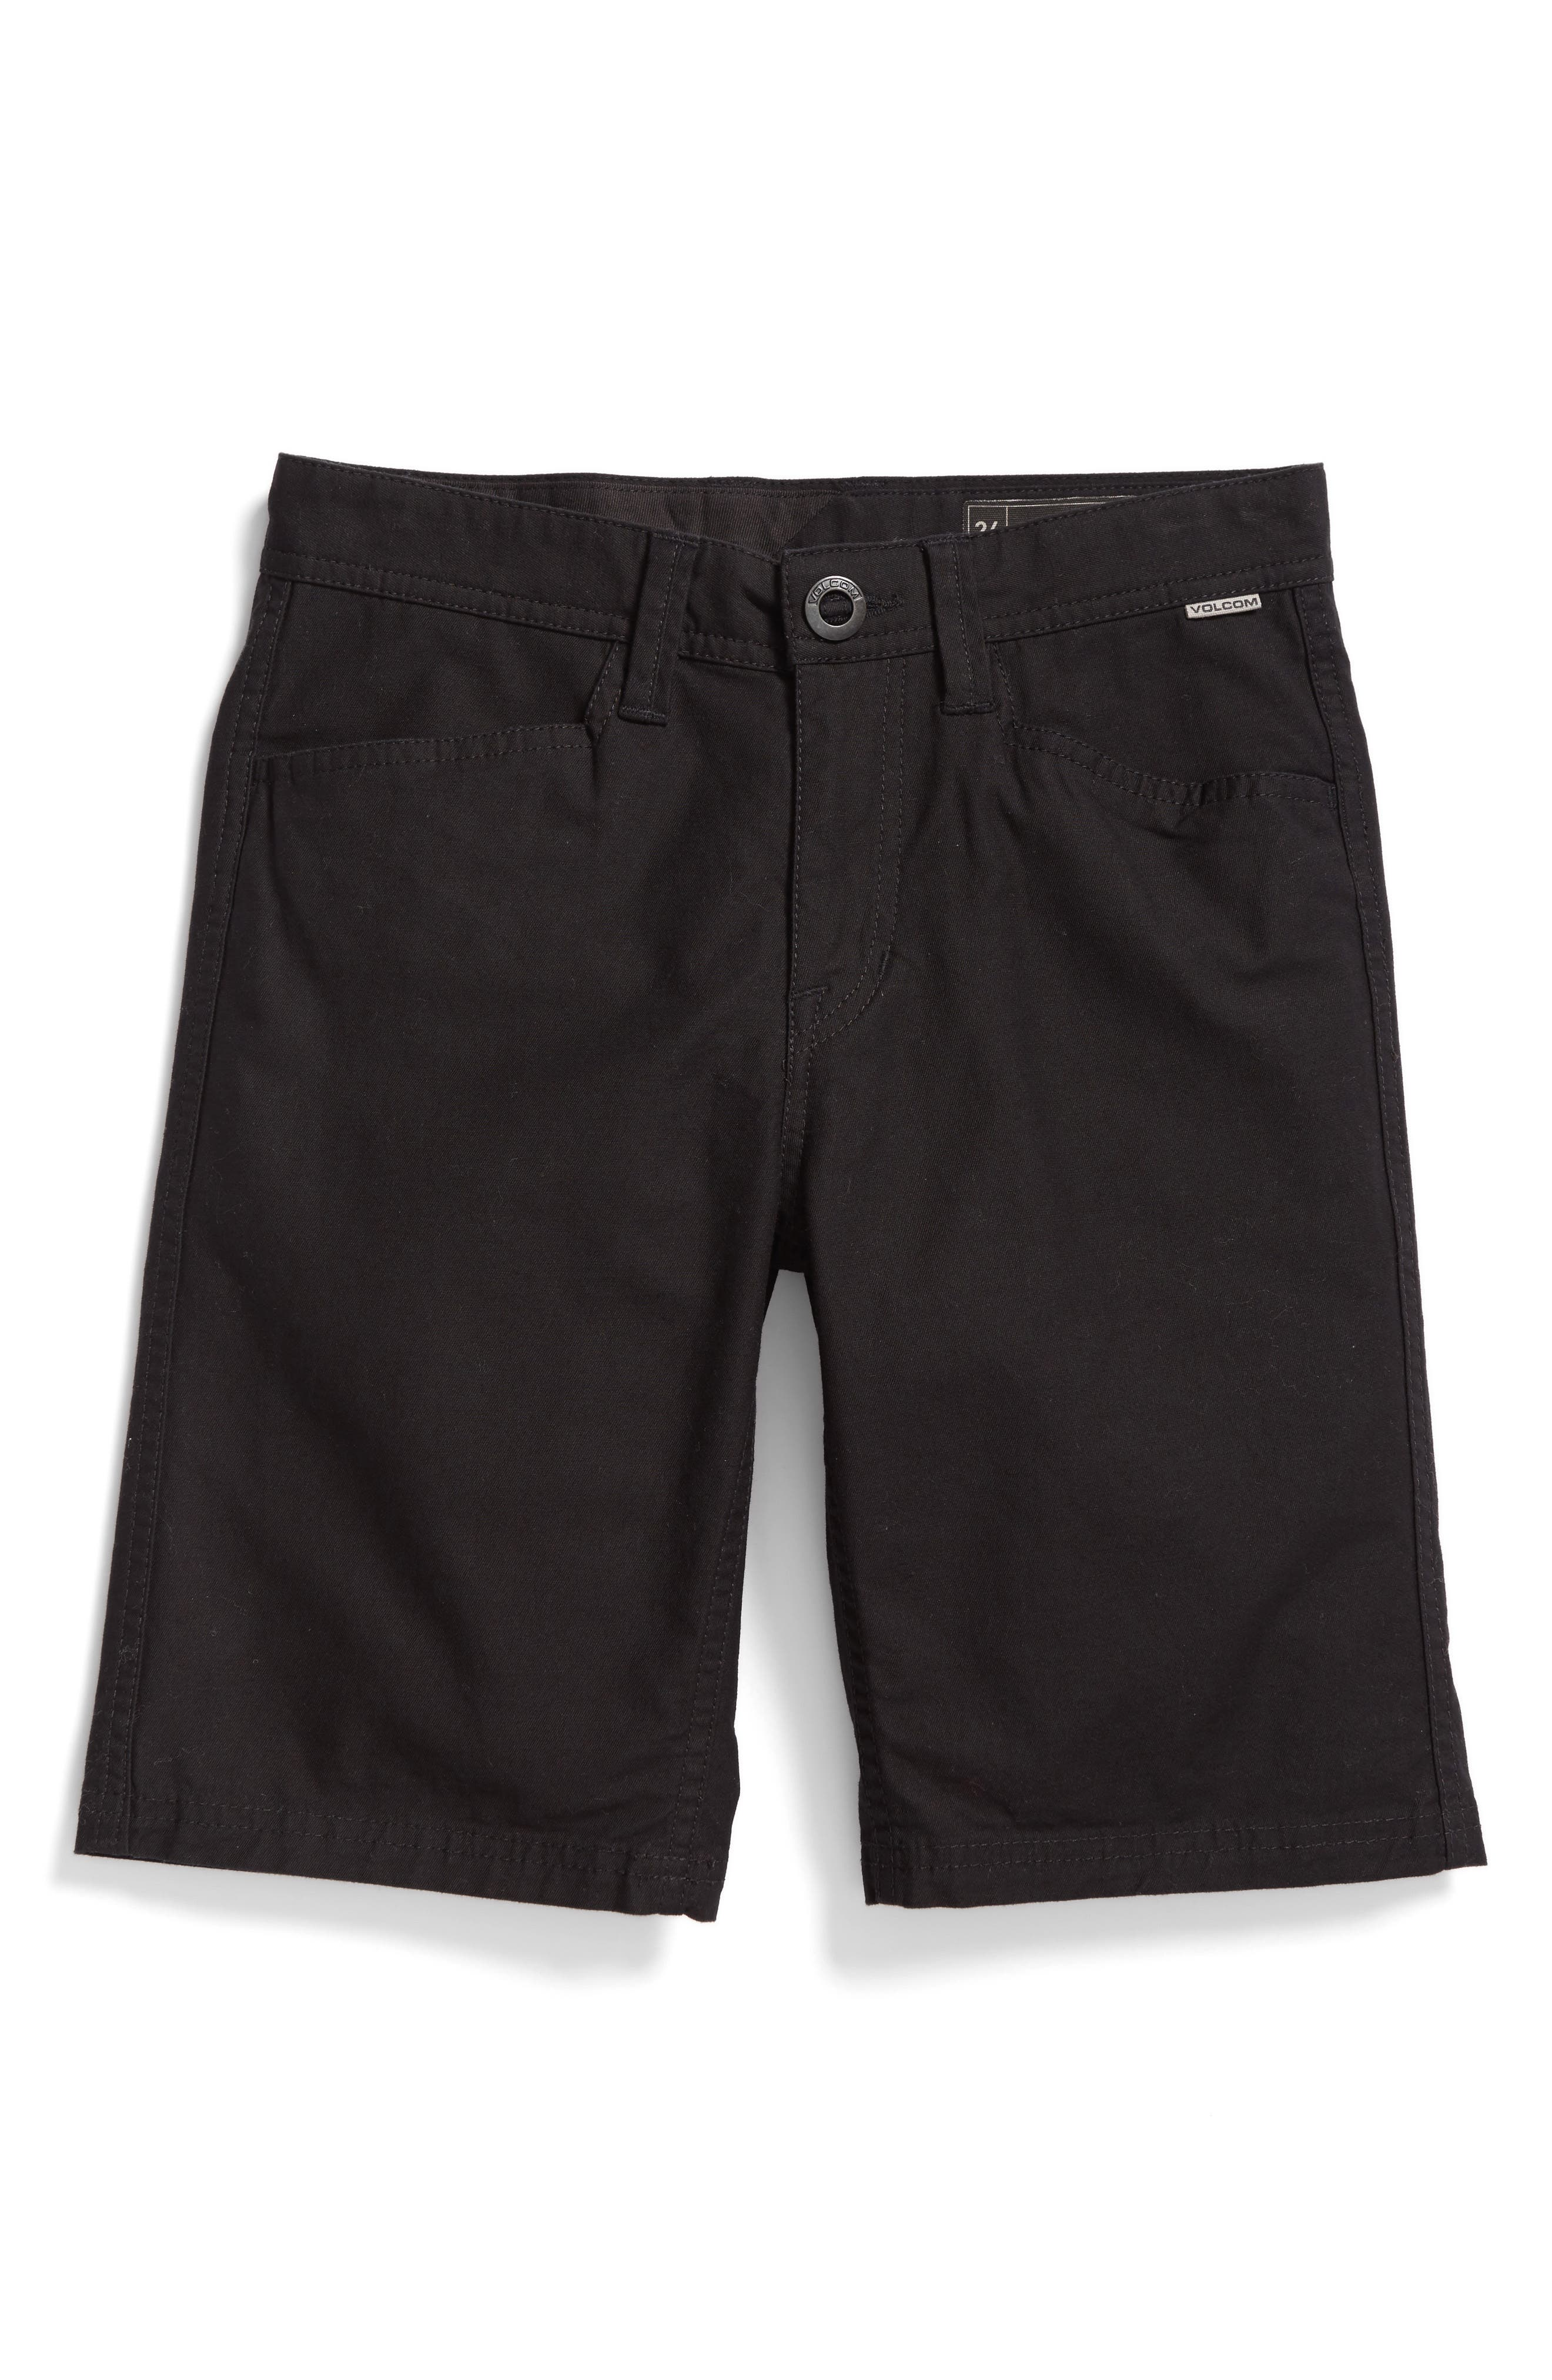 VSM Gritter Chino Shorts,                         Main,                         color, 001